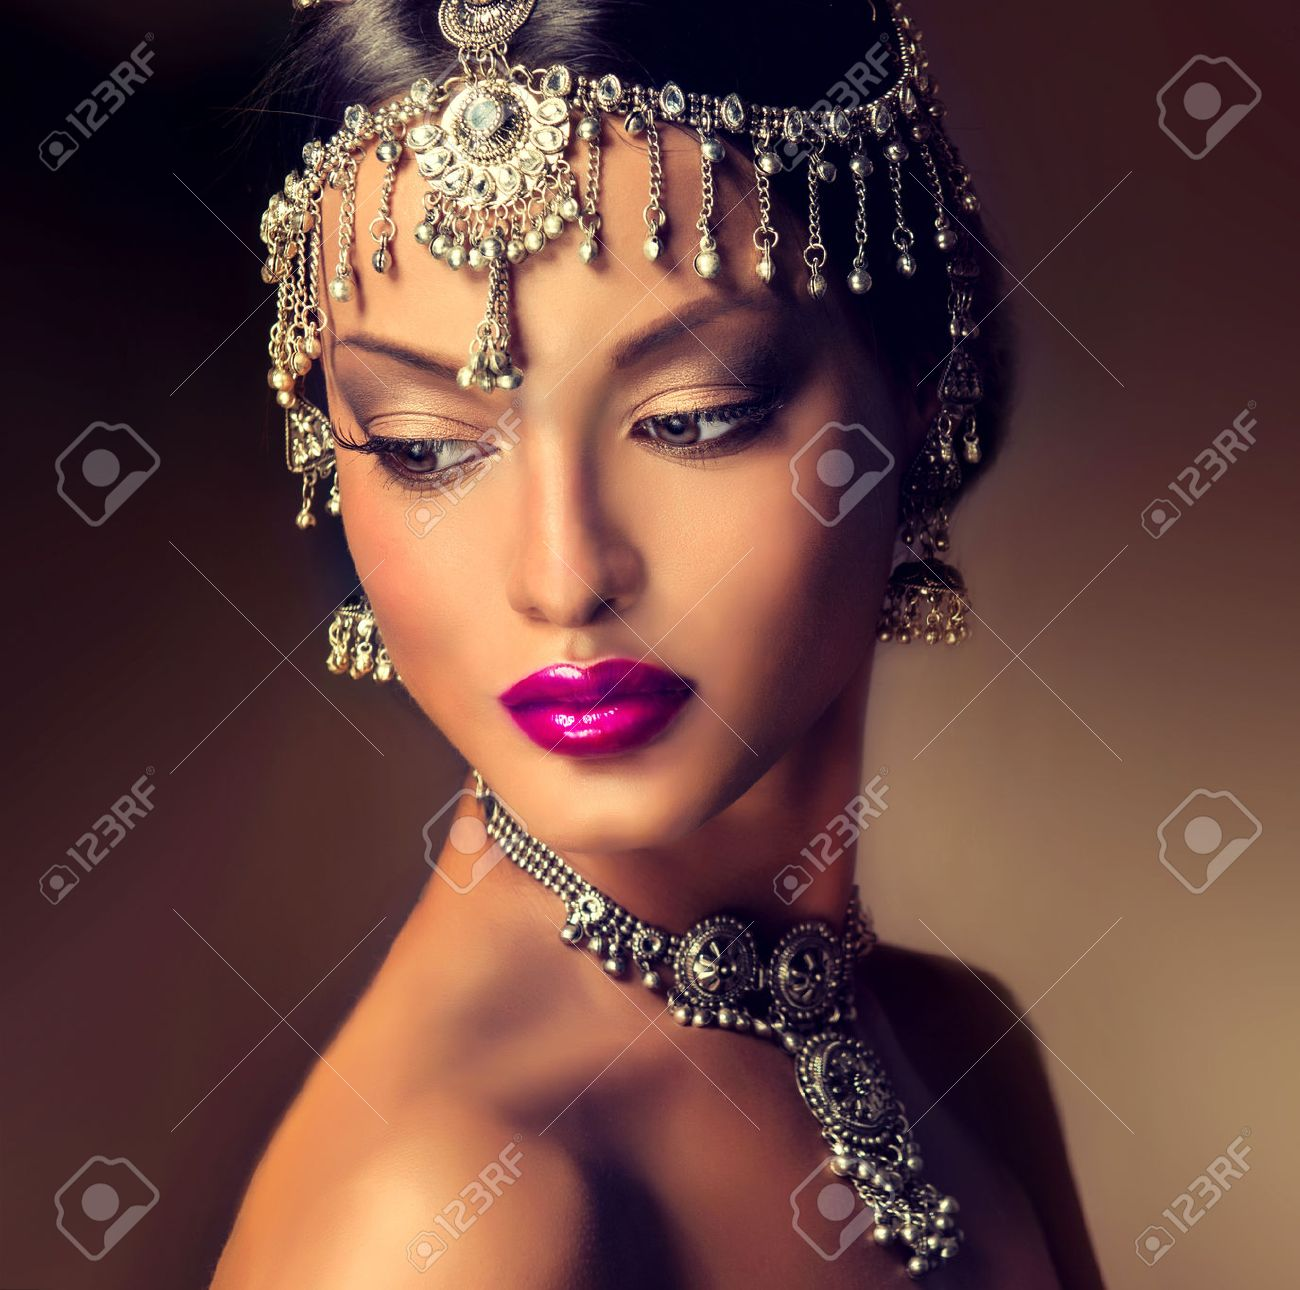 Beautiful Indian women portrait with jewelry. elegant Indian girl looking  to the side, bollywood